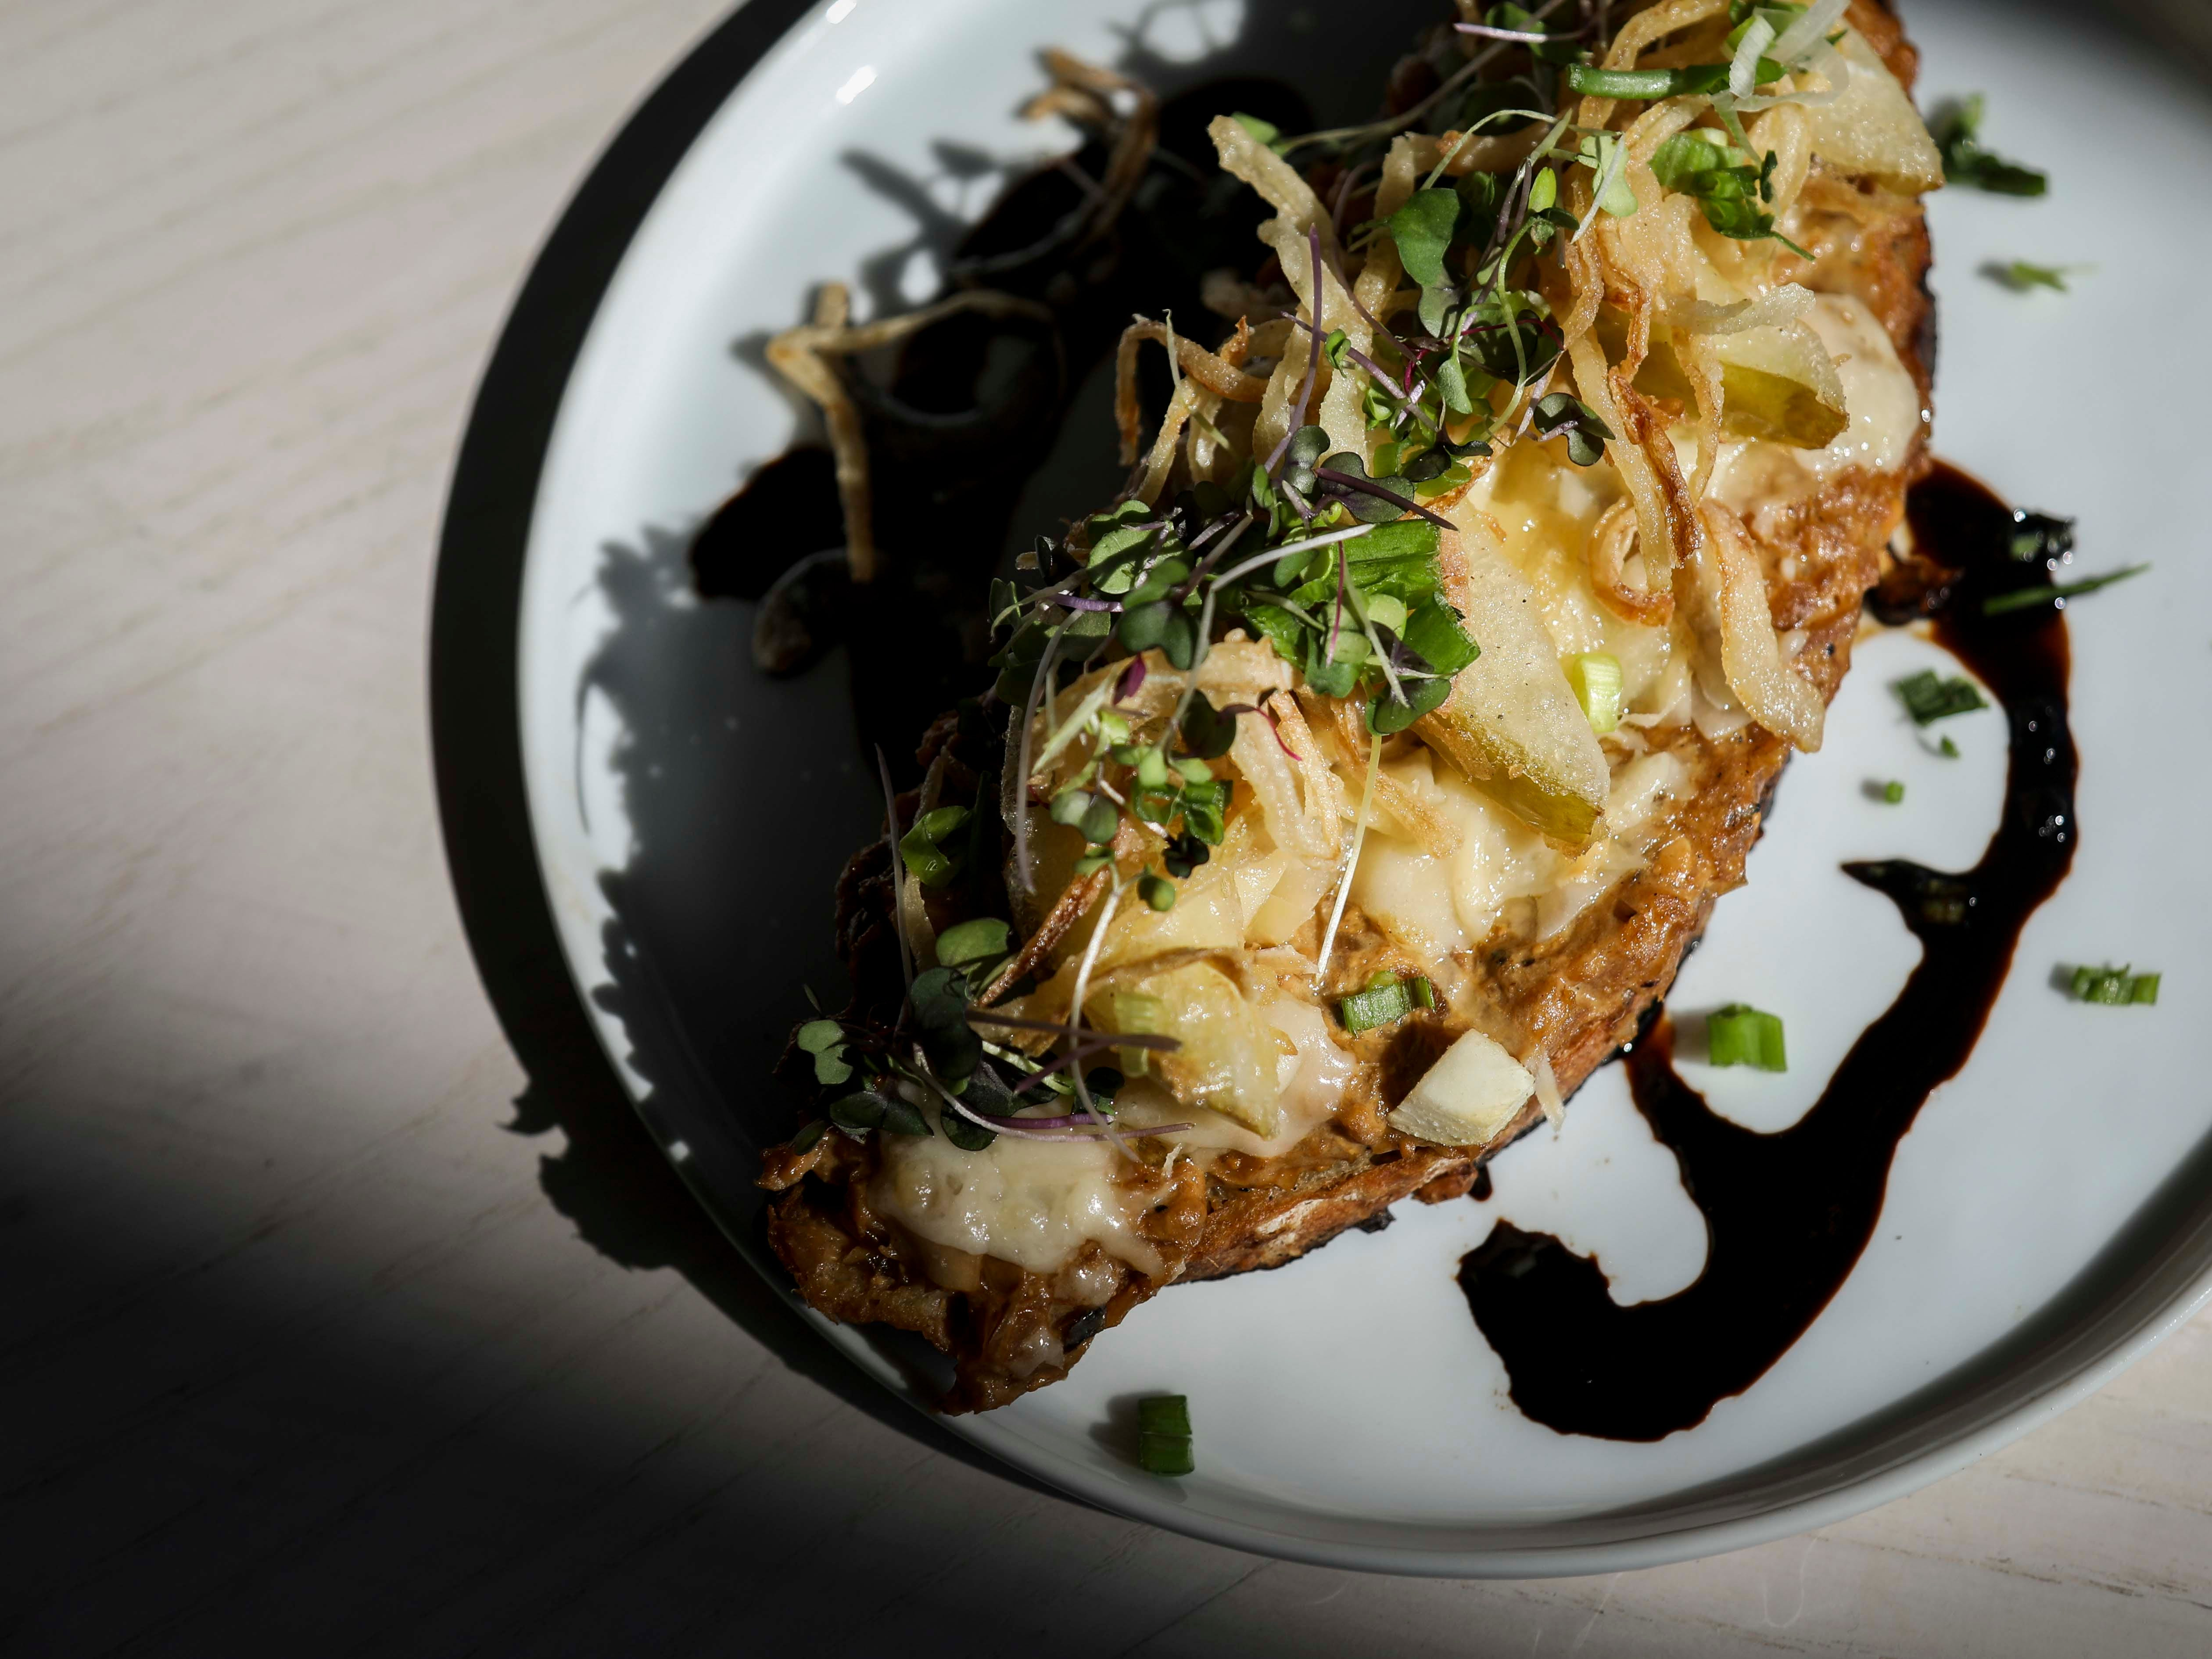 French Onion Soup Toast from Naive in NuLu on October 18, 2018.